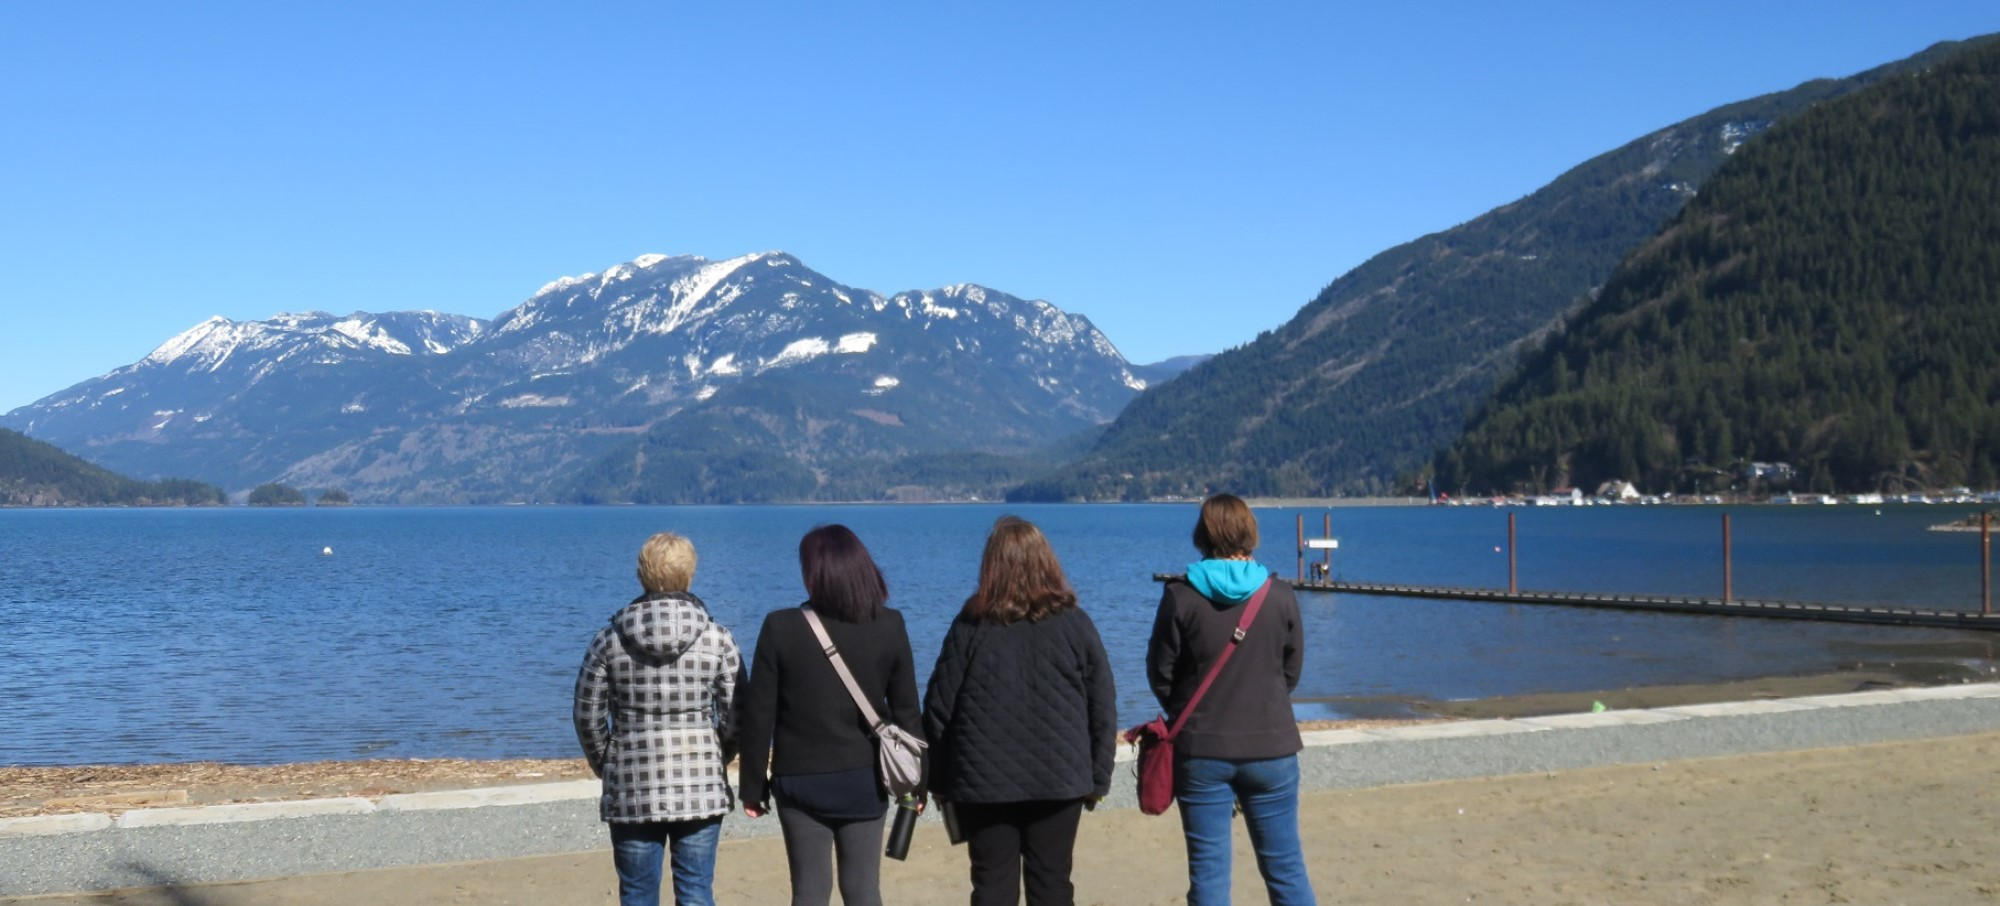 Harrison Hot Springs: A Perfect Spring Weekend Getaway